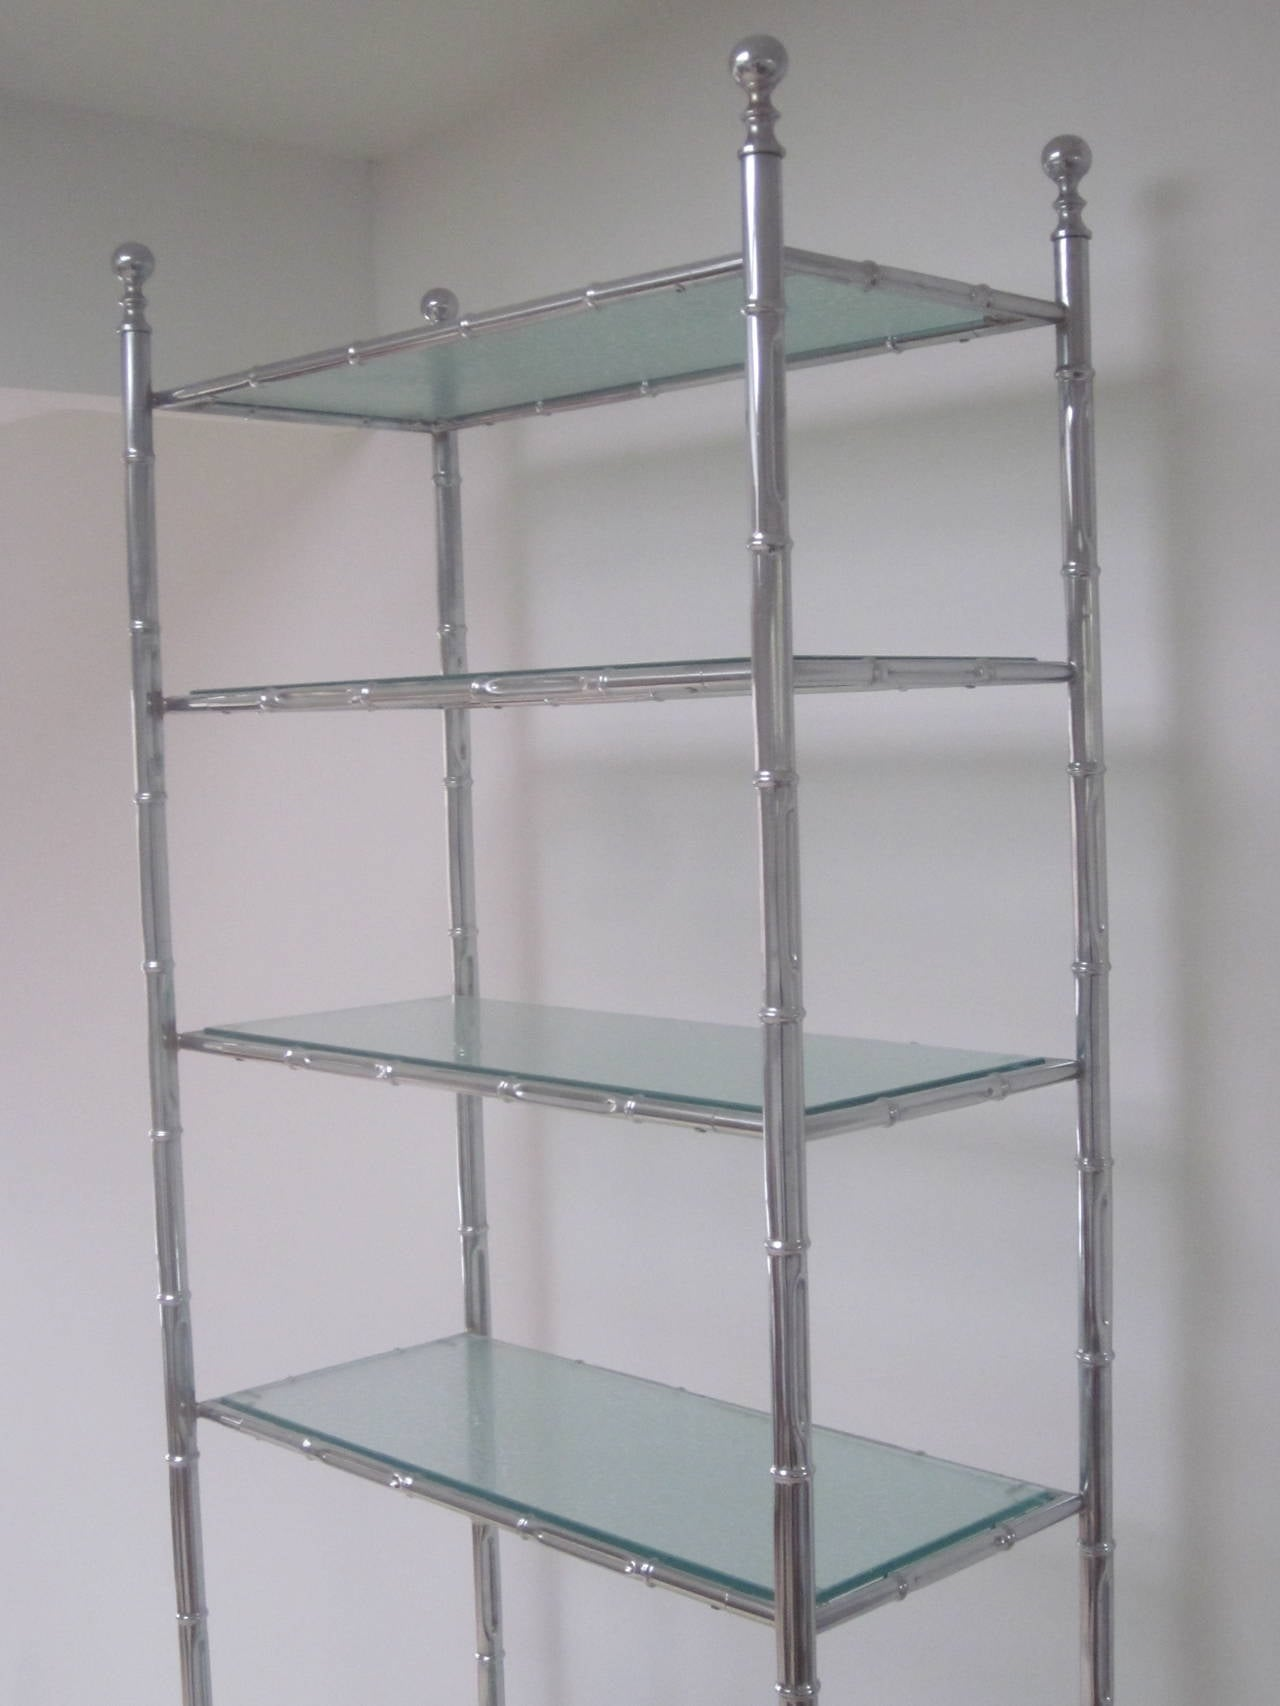 Large french 1960s nickeled faux bamboo etagere by maison bagu s for sale at - Etagere faite maison ...